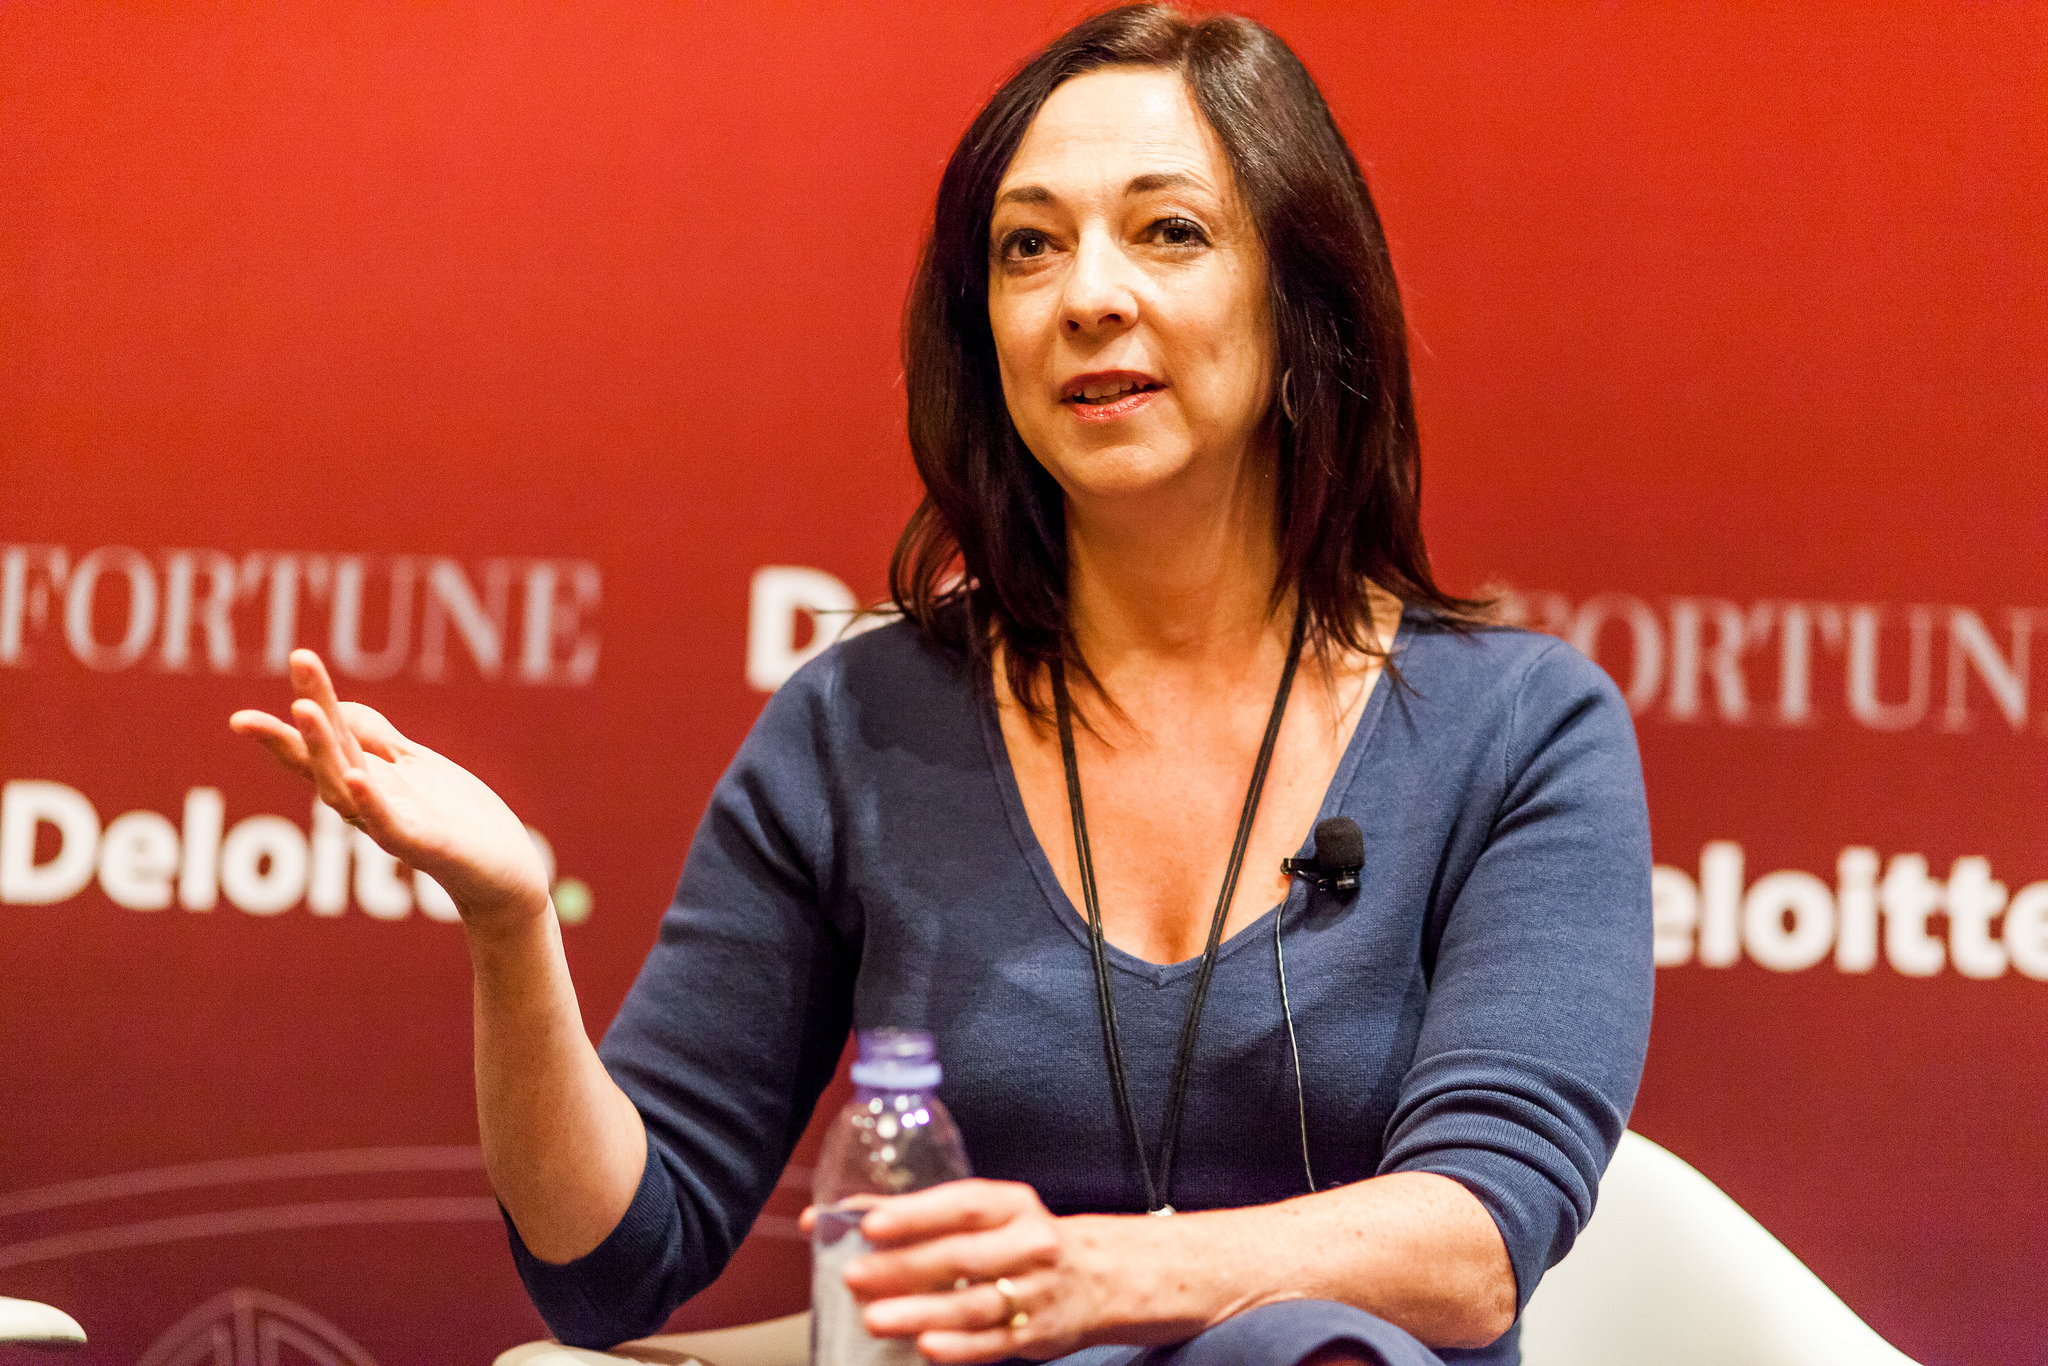 Susan Cain, author of Quiet: The Power of Introverts in a World That Can't Stop Talking speaking at Fortune's Most Powerful Women 2015 summit in Washington, D.C.